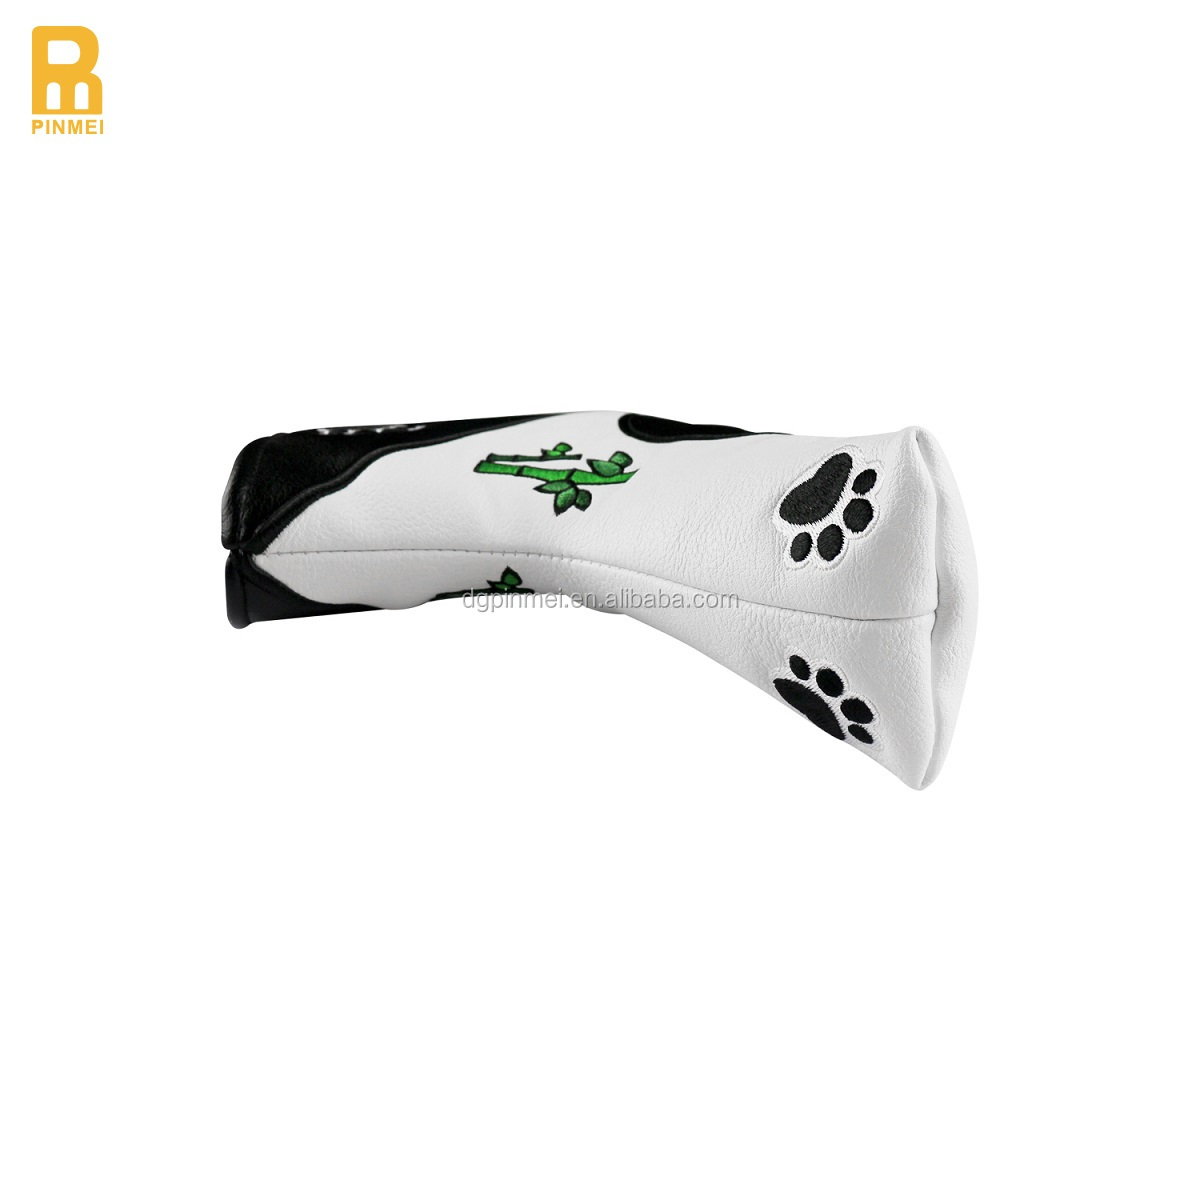 Factory Price Panda Embroidery Golf Club Head Cover for Putter